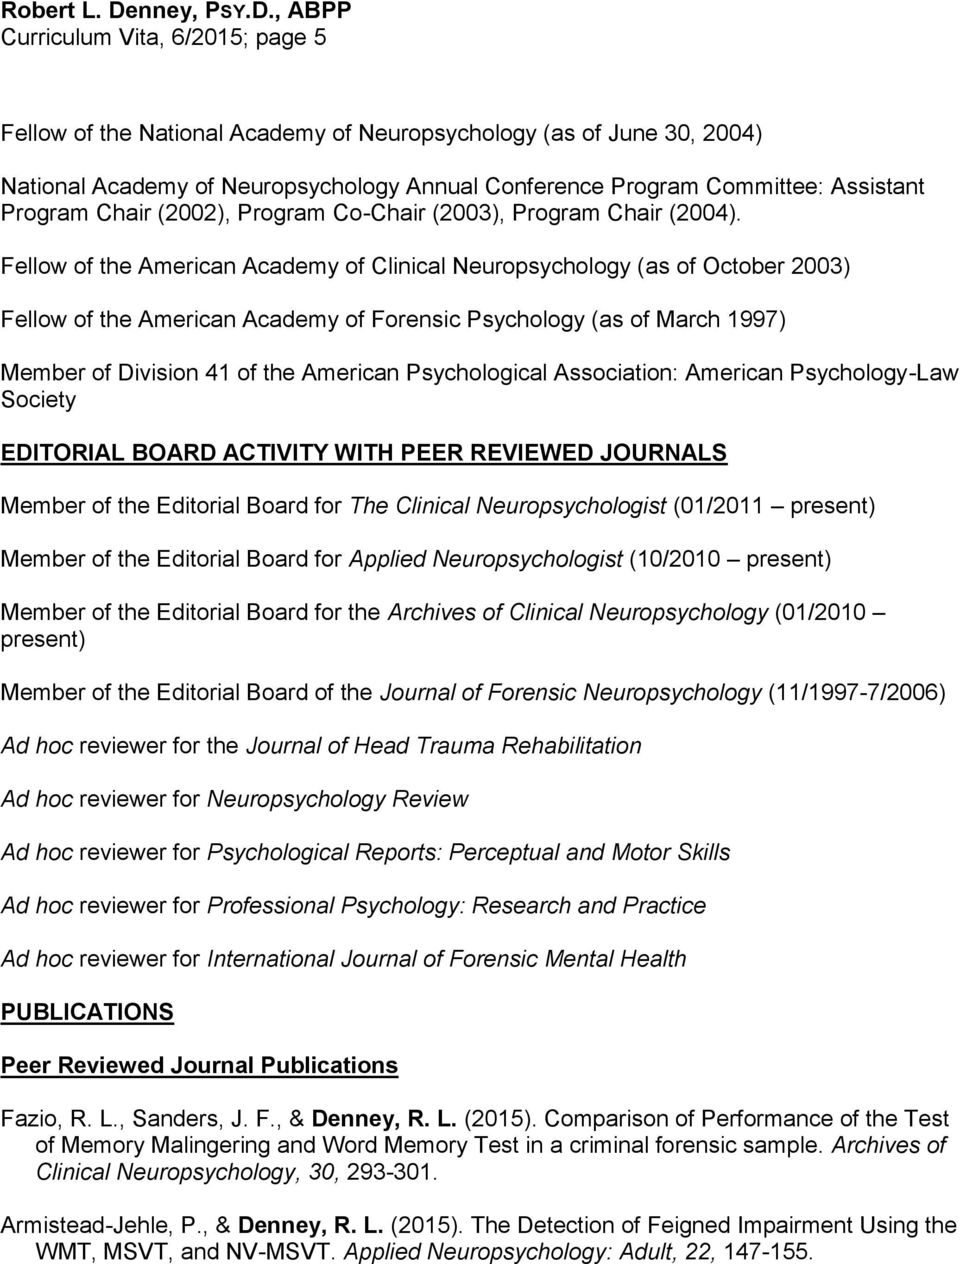 Fellow of the American Academy of Clinical Neuropsychology (as of October 2003) Fellow of the American Academy of Forensic Psychology (as of March 1997) Member of Division 41 of the American